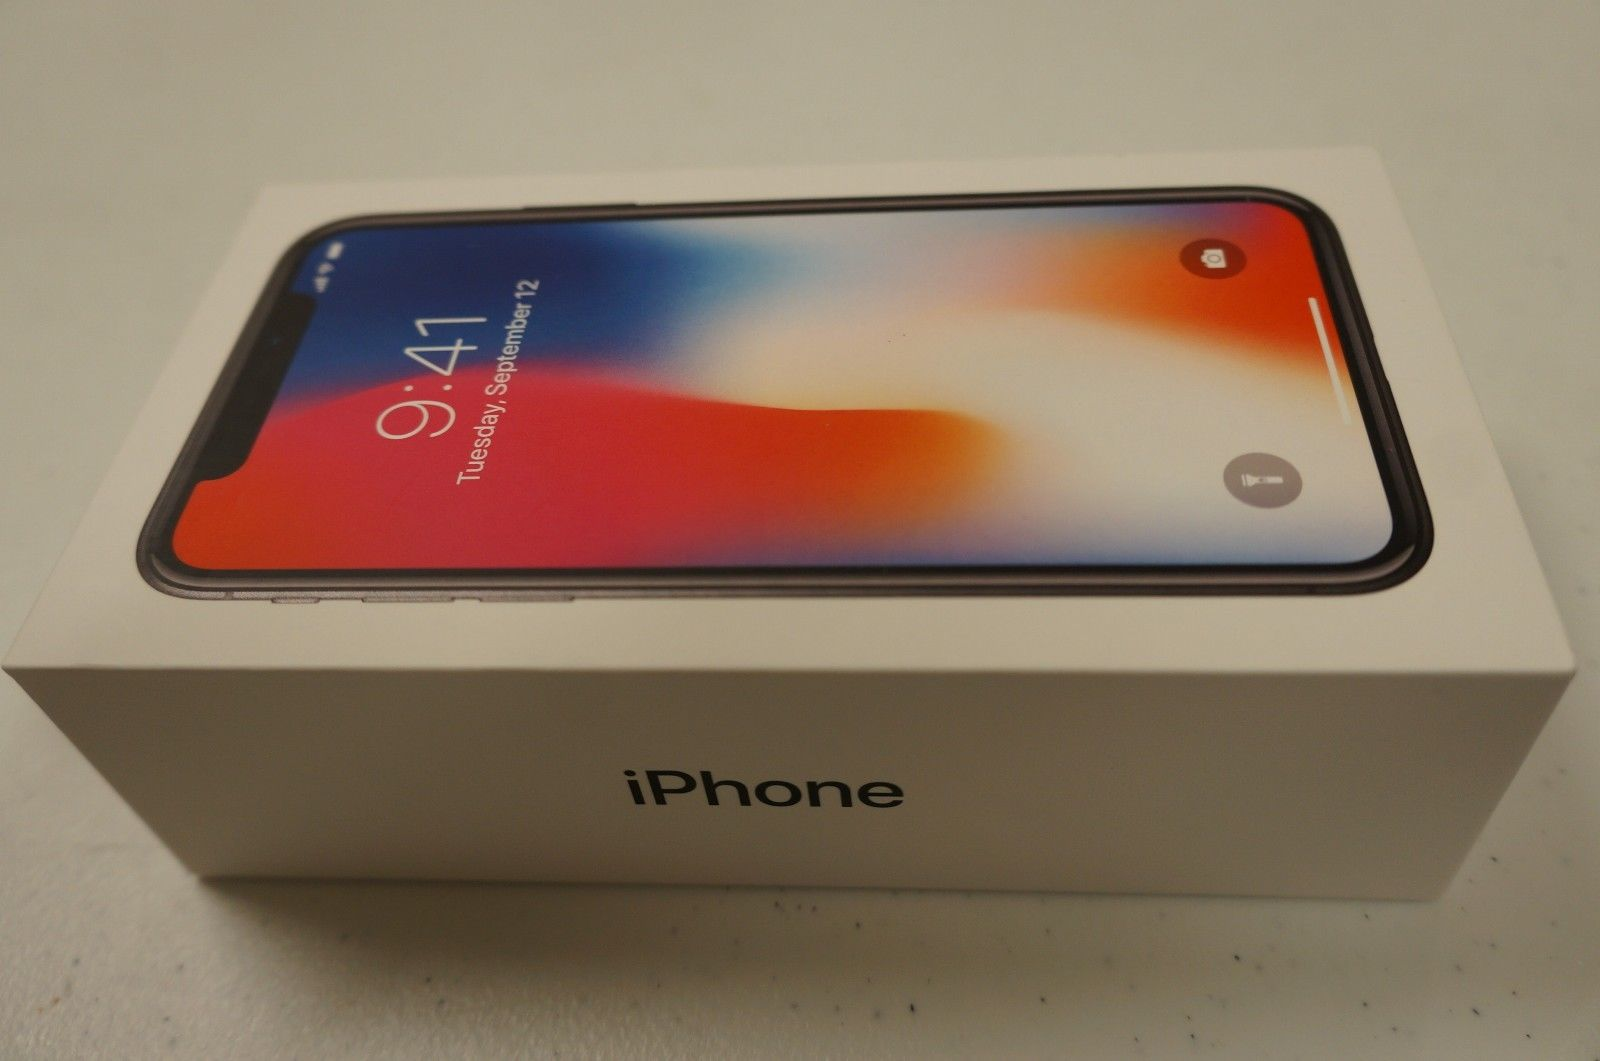 Apple iPhone X 64GB/256GB - GSM & CDMA Unlocked WHATSAPP CHAT:+971 52 334 2859